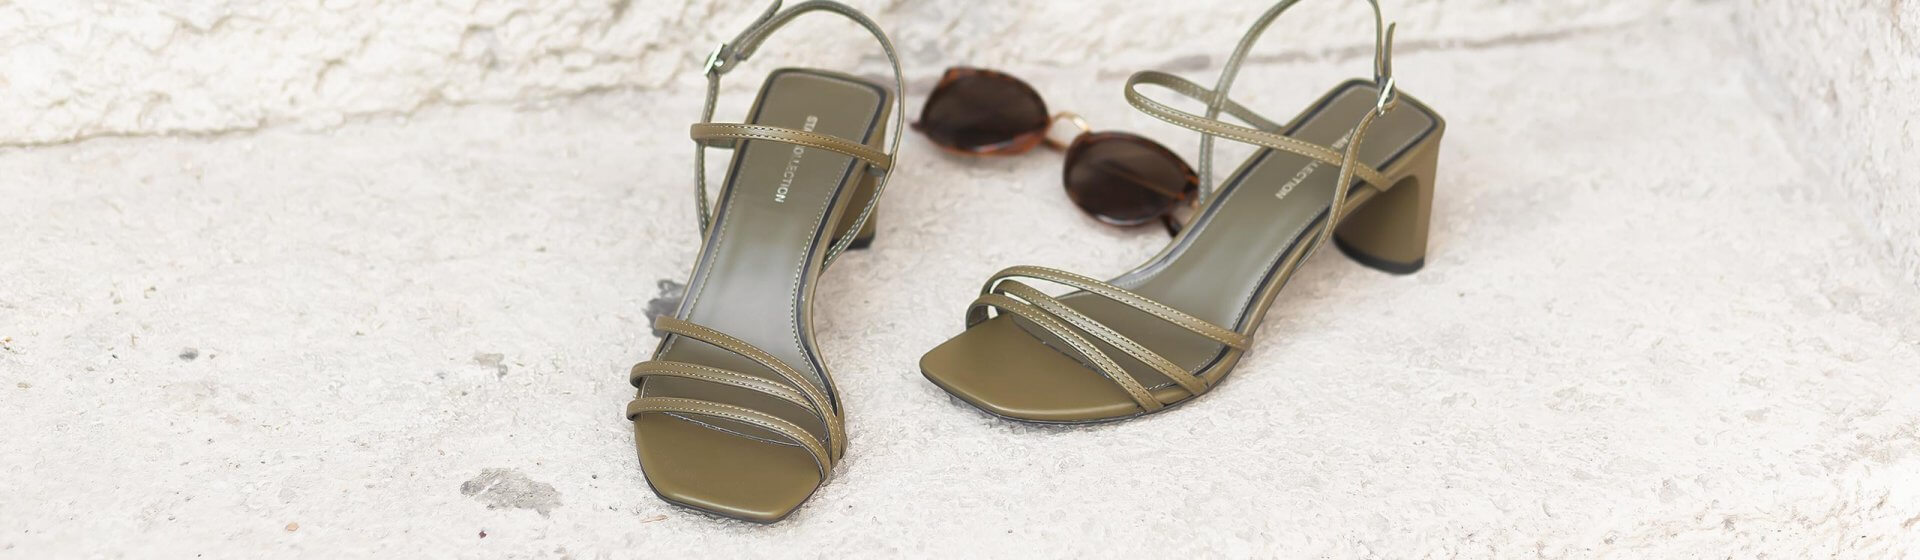 Sandalen Trends 2020, Shoelove by Deichmann